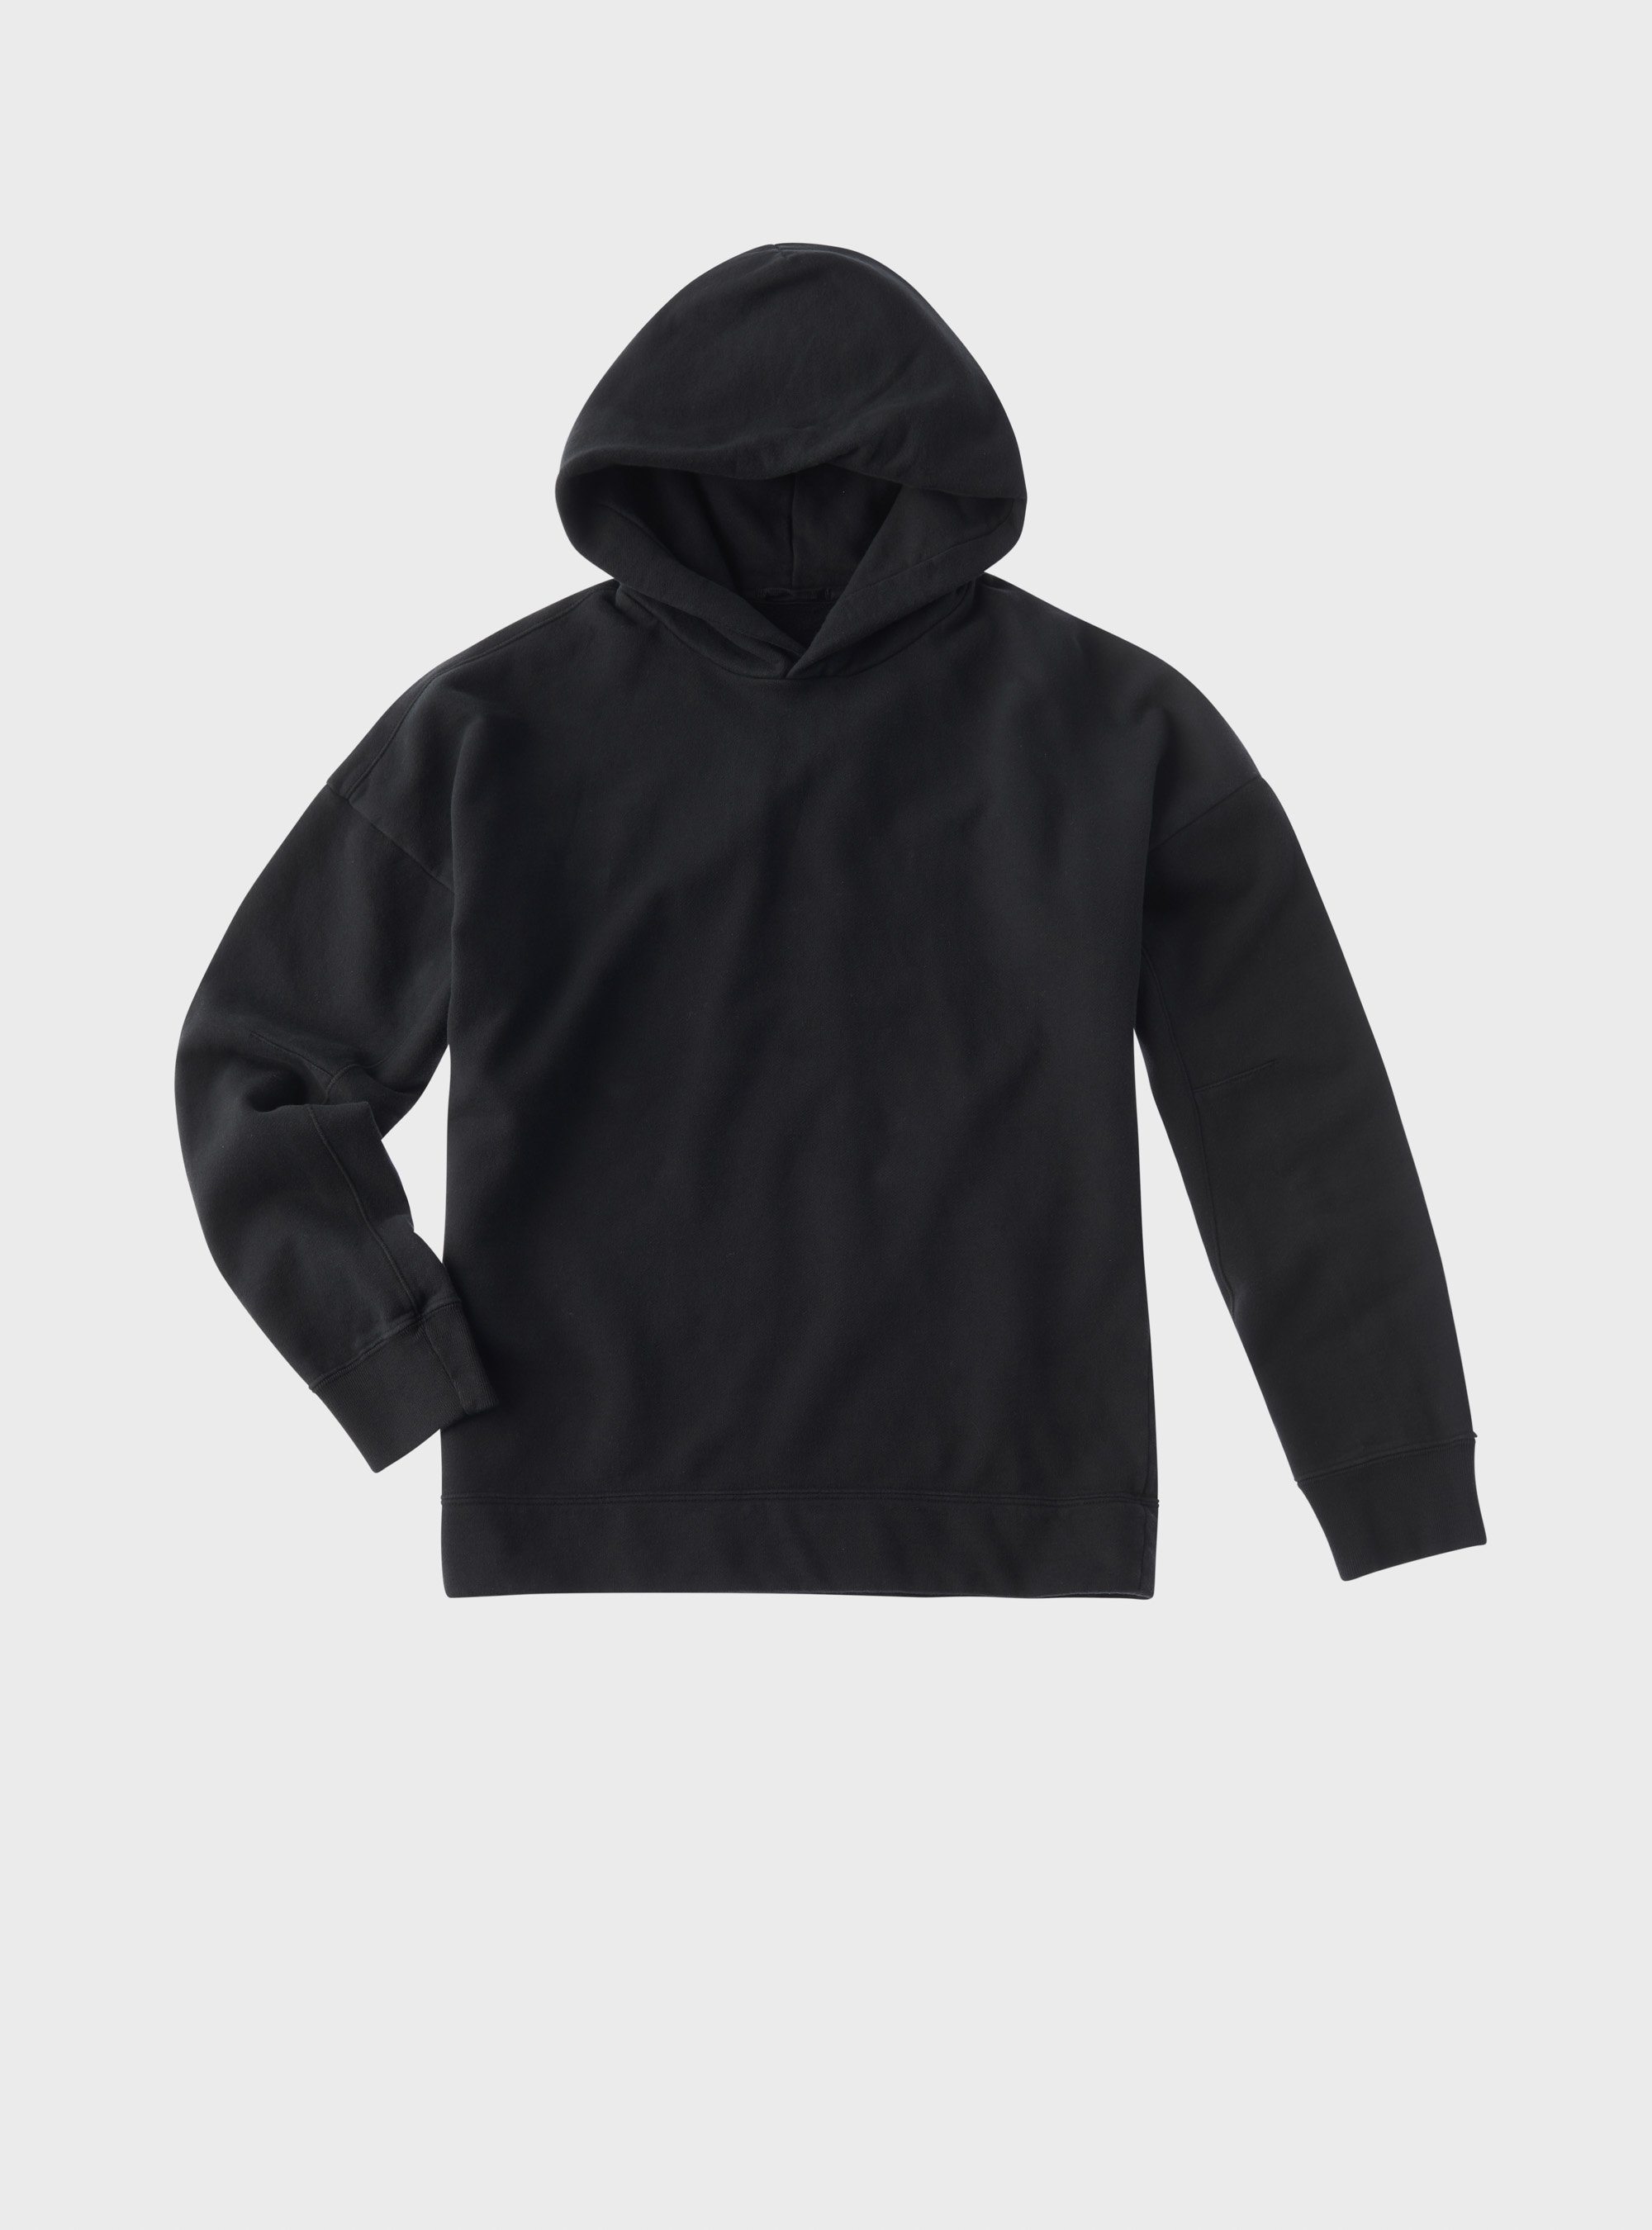 TEN C - HOODED SWEATER - Black - TEN C